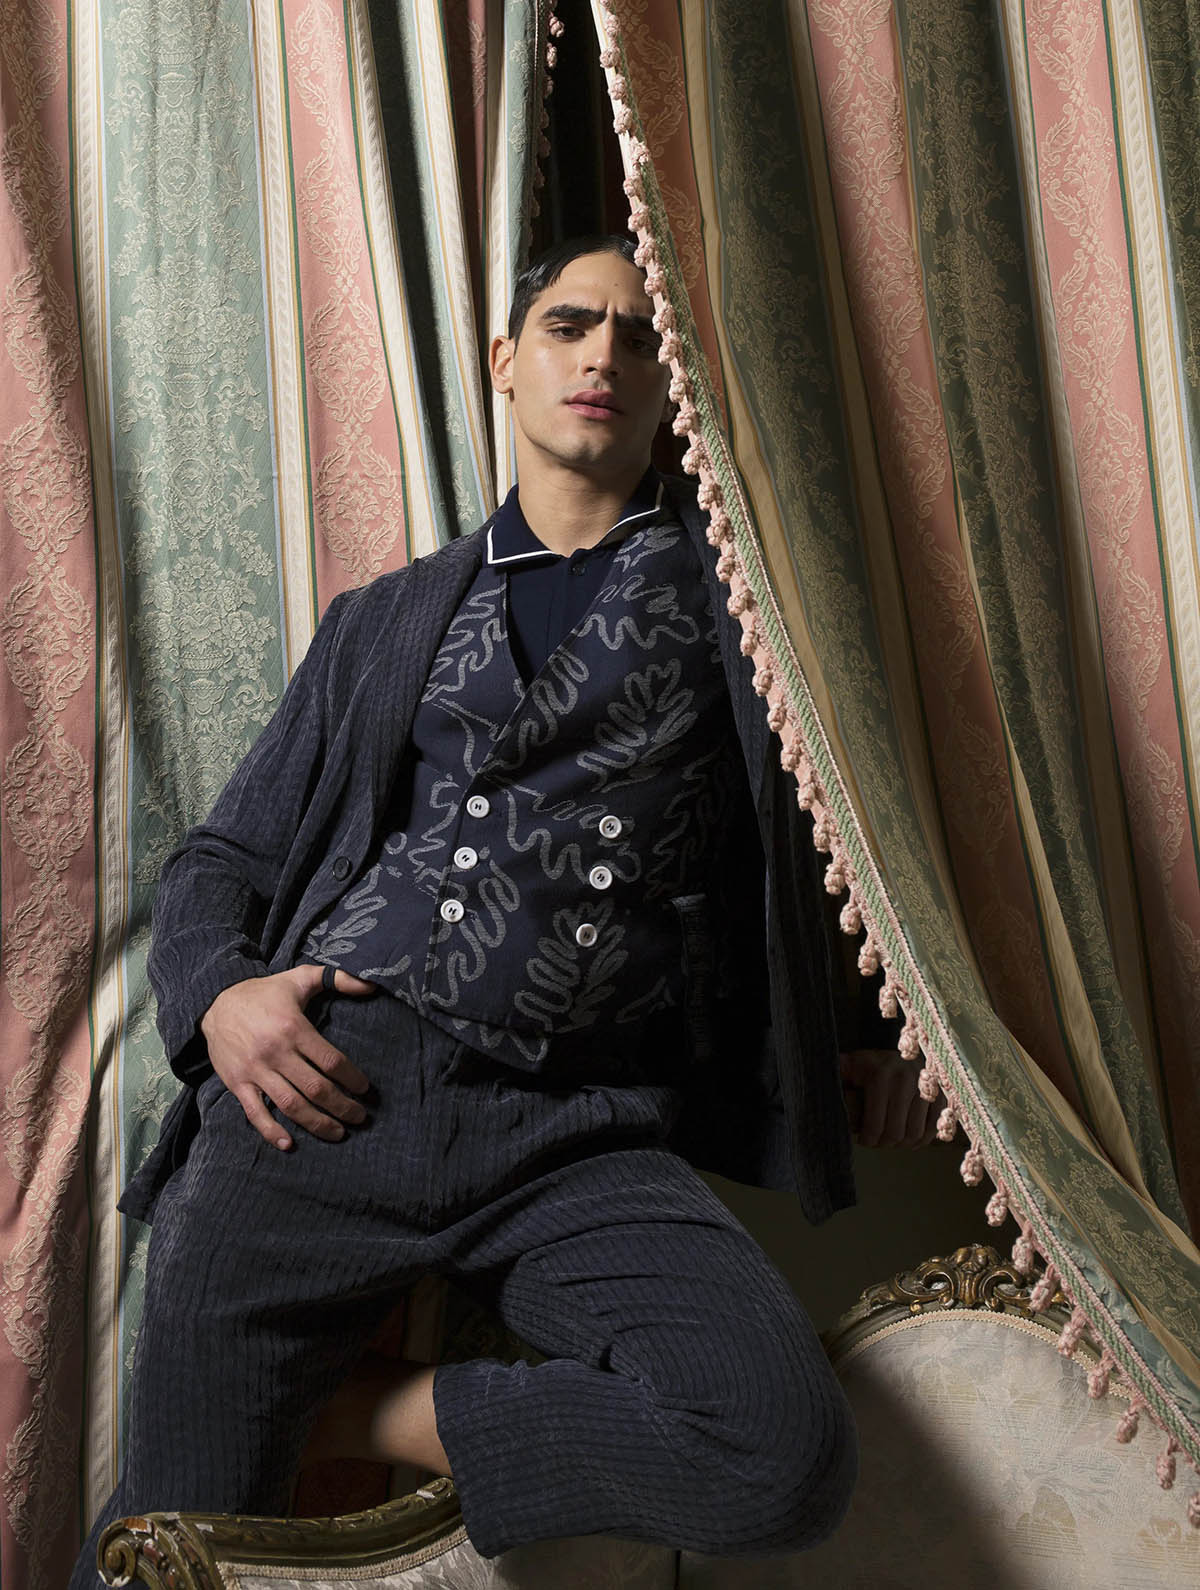 Jhona Burjack by Saverio Cardia for L'Officiel Hommes Italia Issue 26